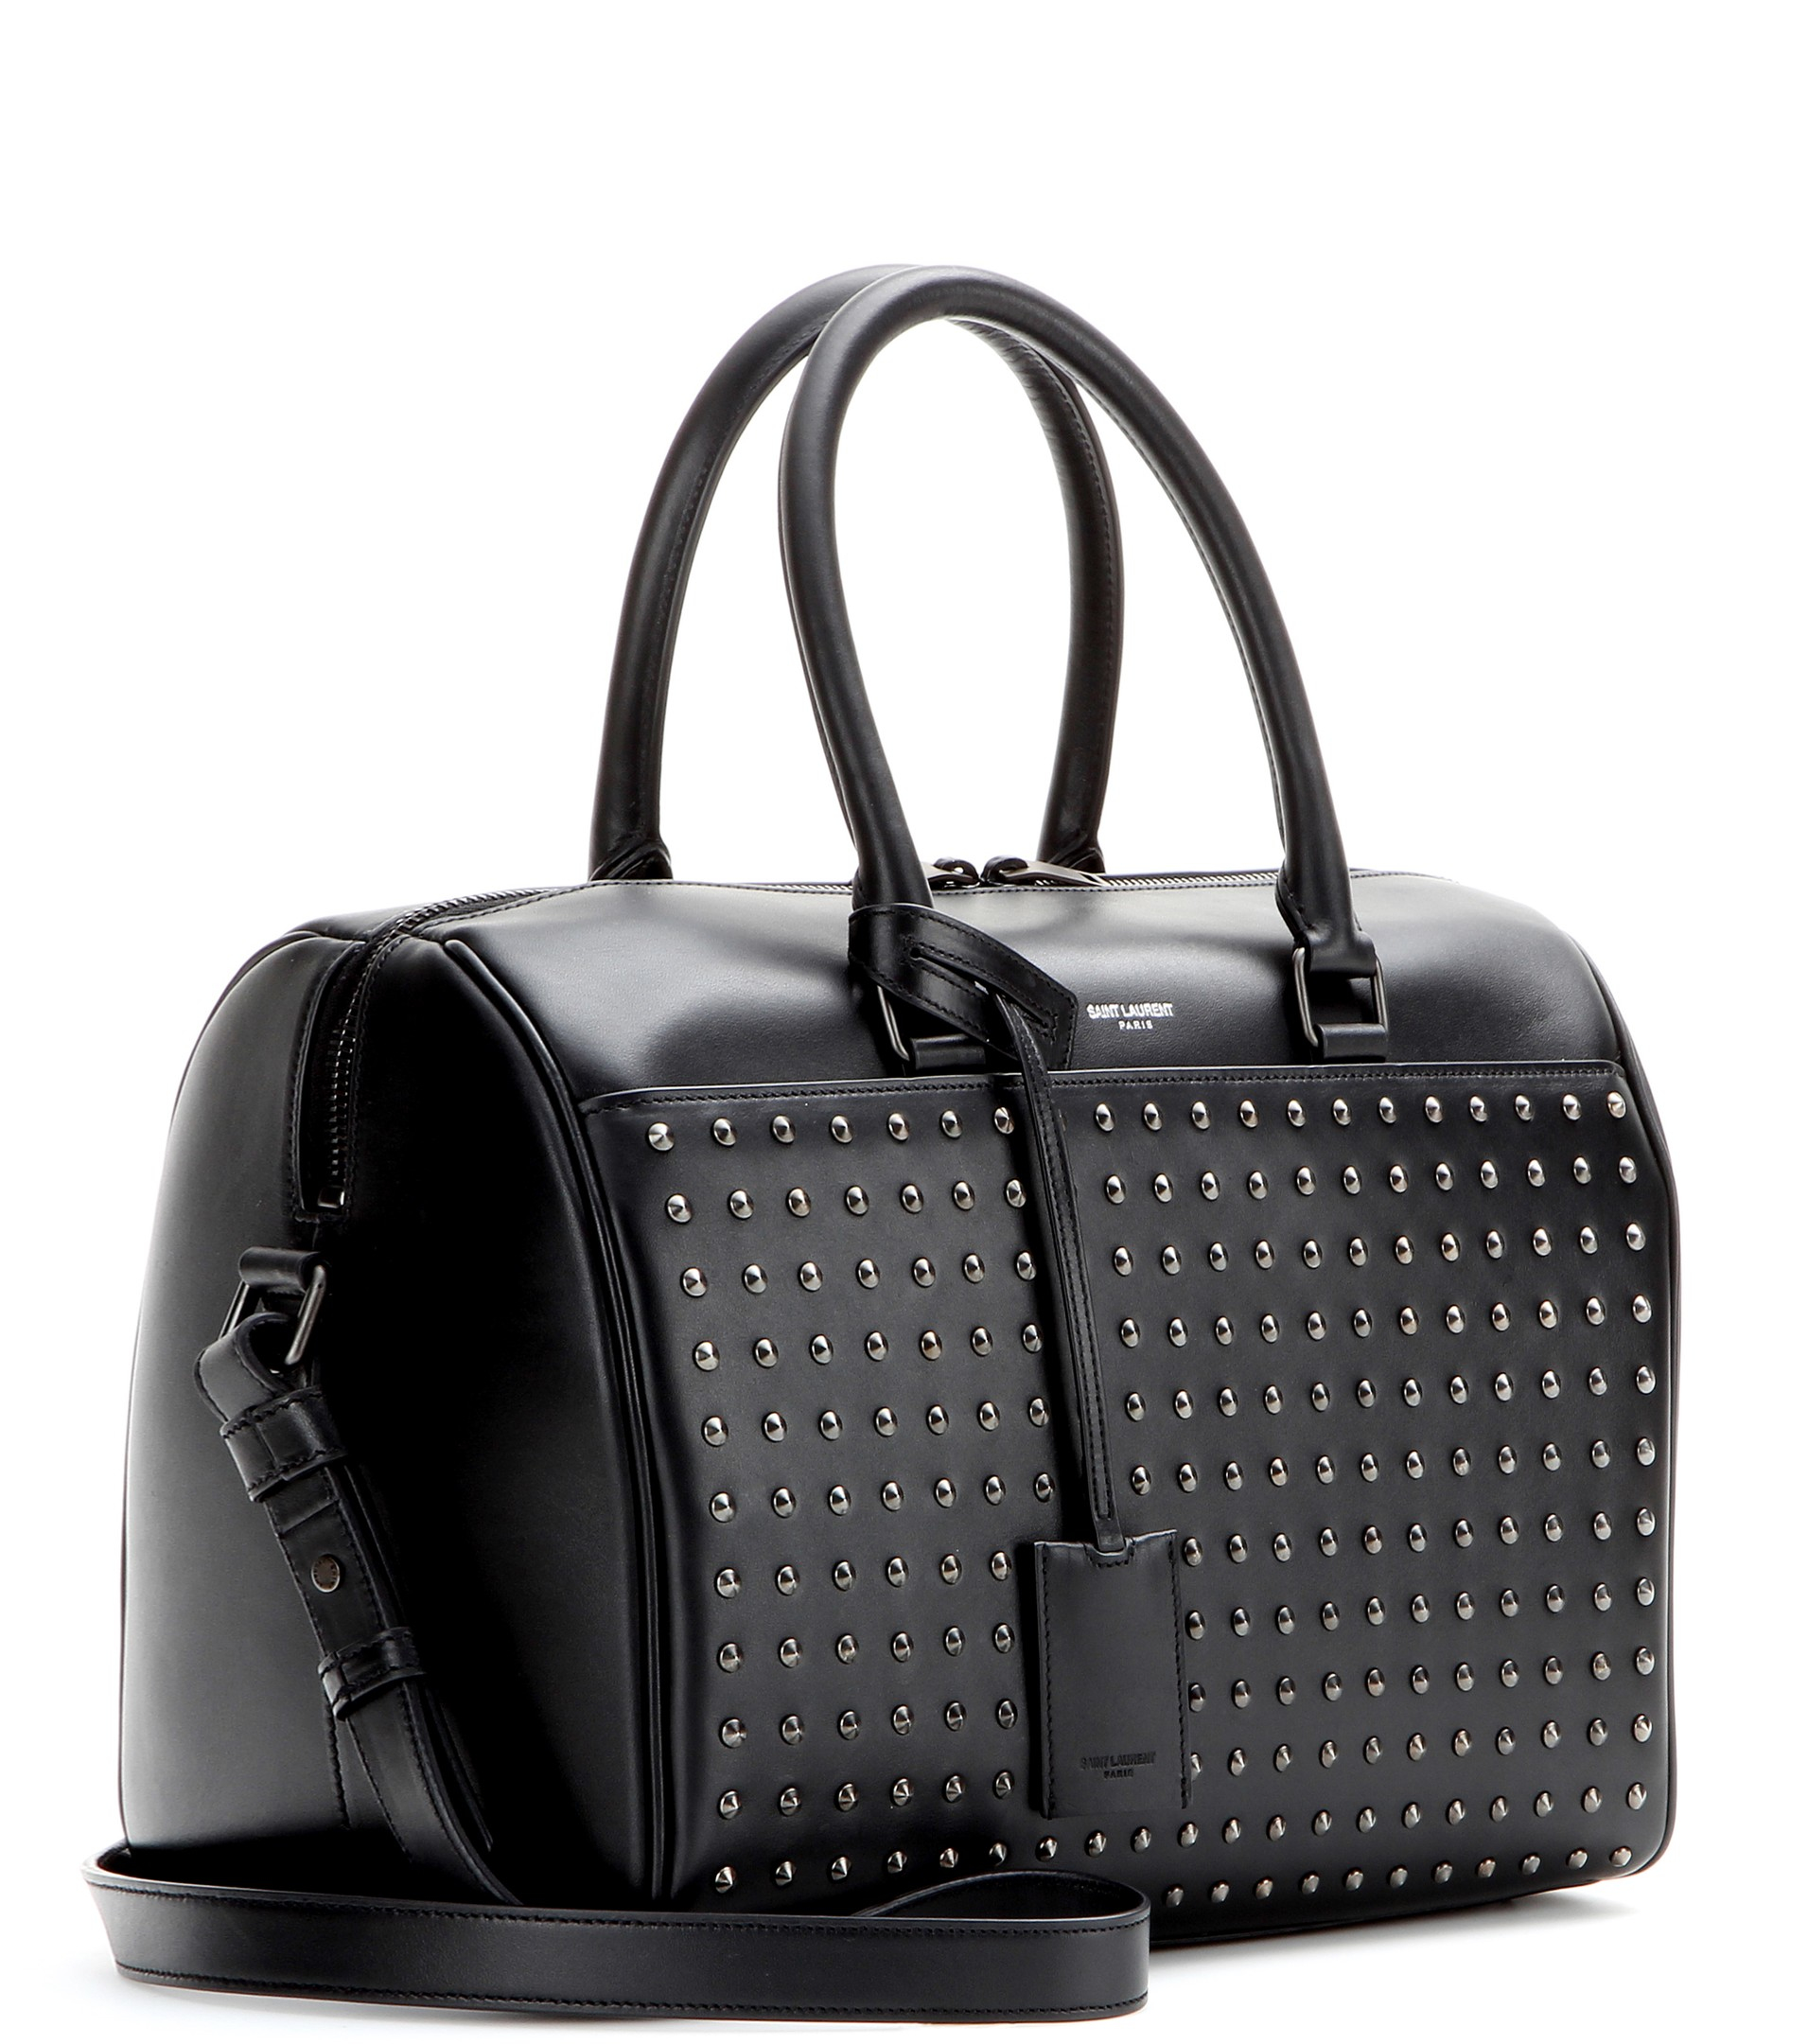 lyst saint laurent duffle 6 studded leather bowling bag in black. Black Bedroom Furniture Sets. Home Design Ideas